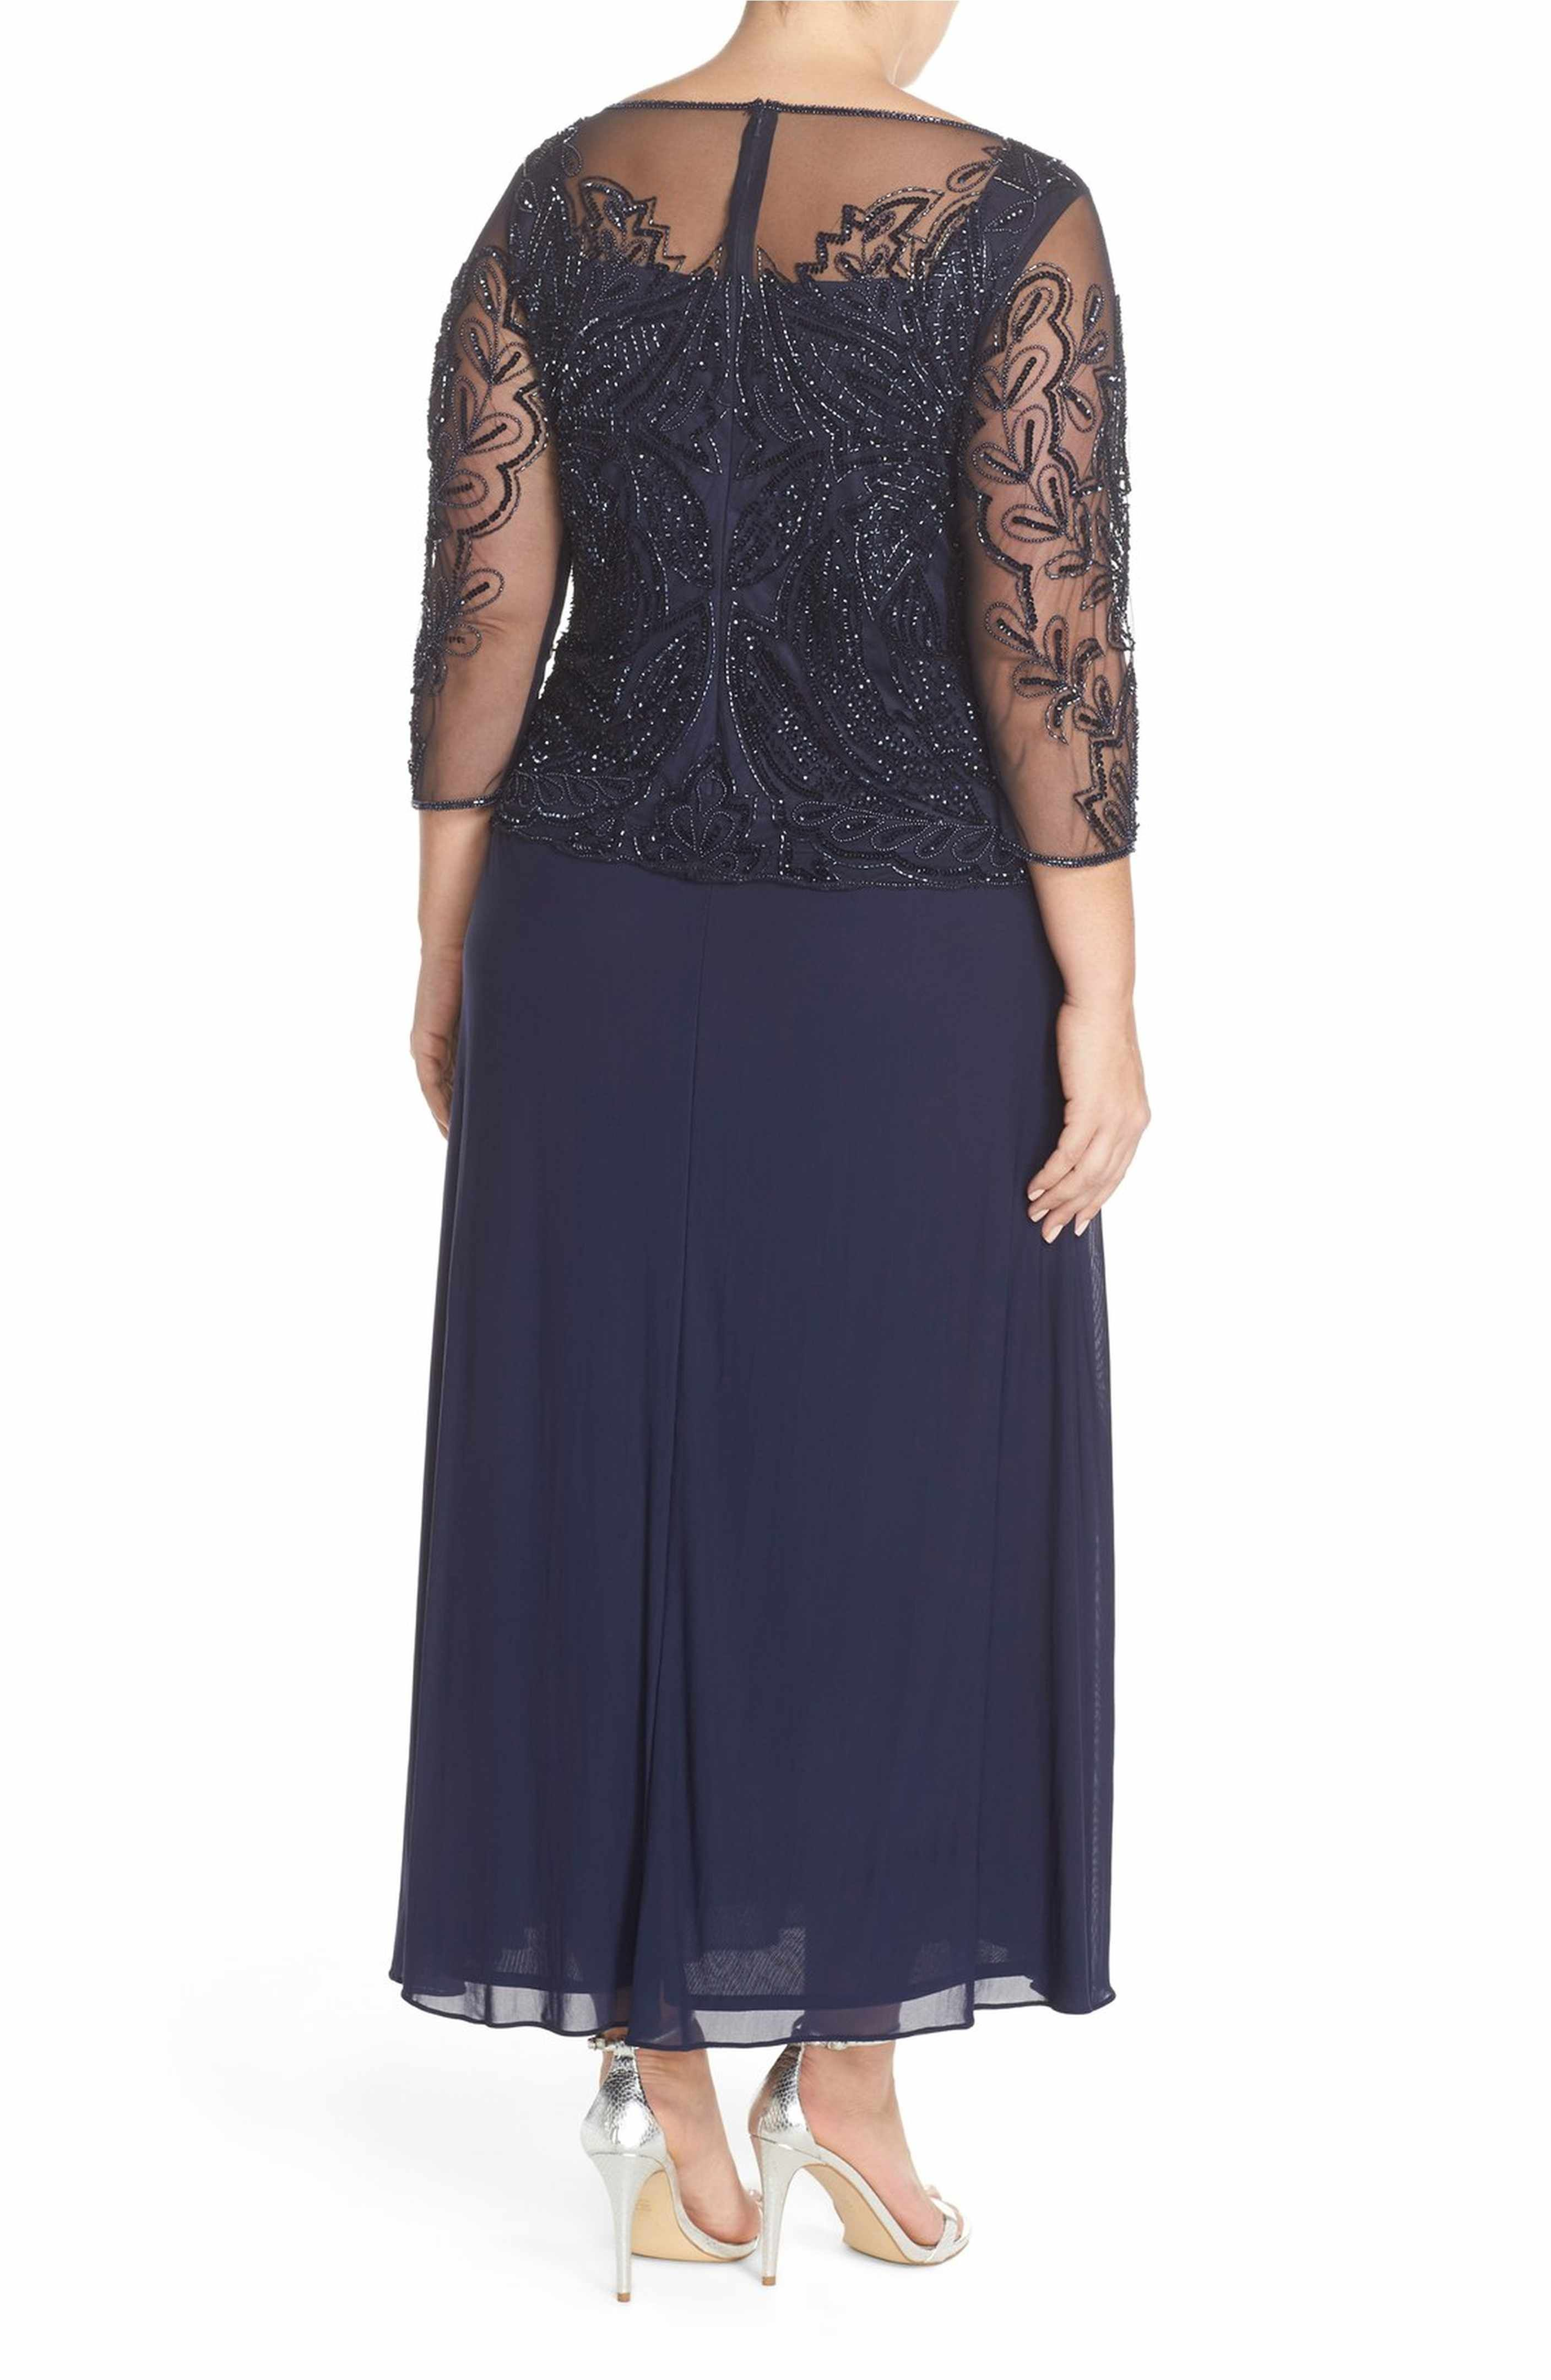 43a6865d918 Main Image - Pisarro Nights Illusion Neck Beaded A-Line Gown (Plus Size)